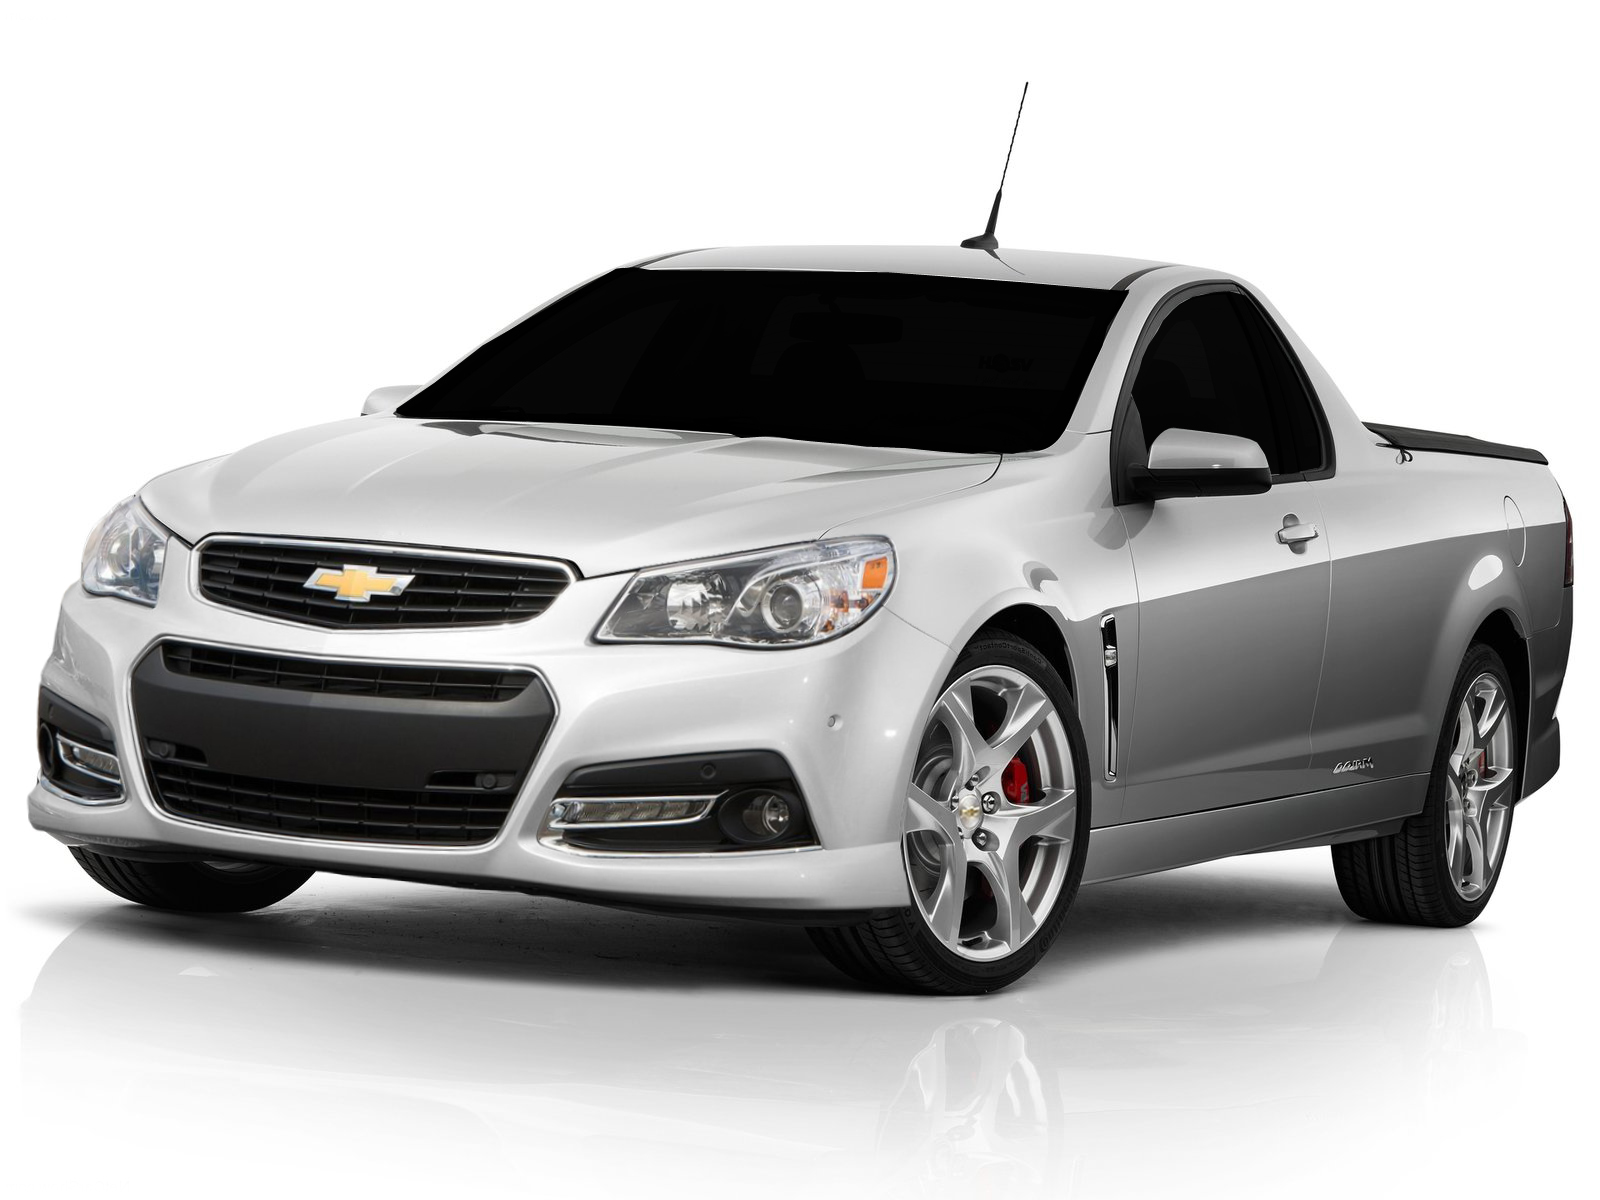 2015 Chevy El Camino Concept | Share The Knownledge